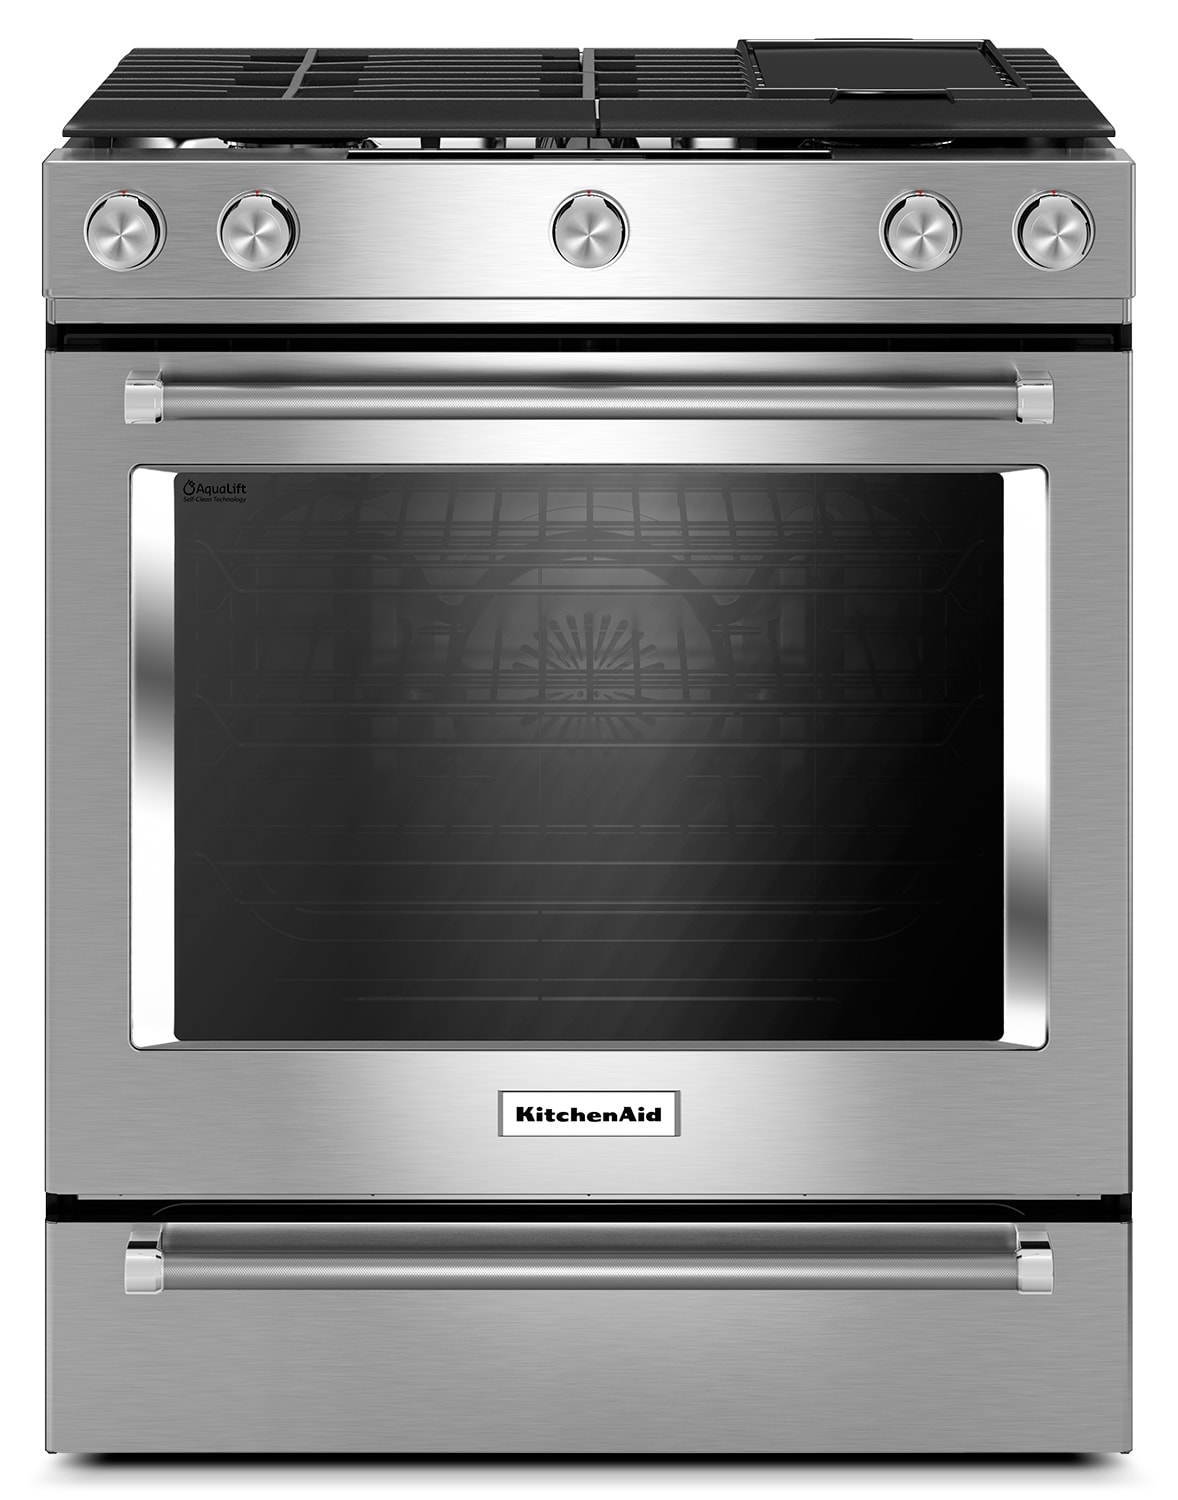 KitchenAid Stainless Steel Slide-In Dual Fuel Convection Range (7.1 Cu. Ft.) - YKSDB900ESS